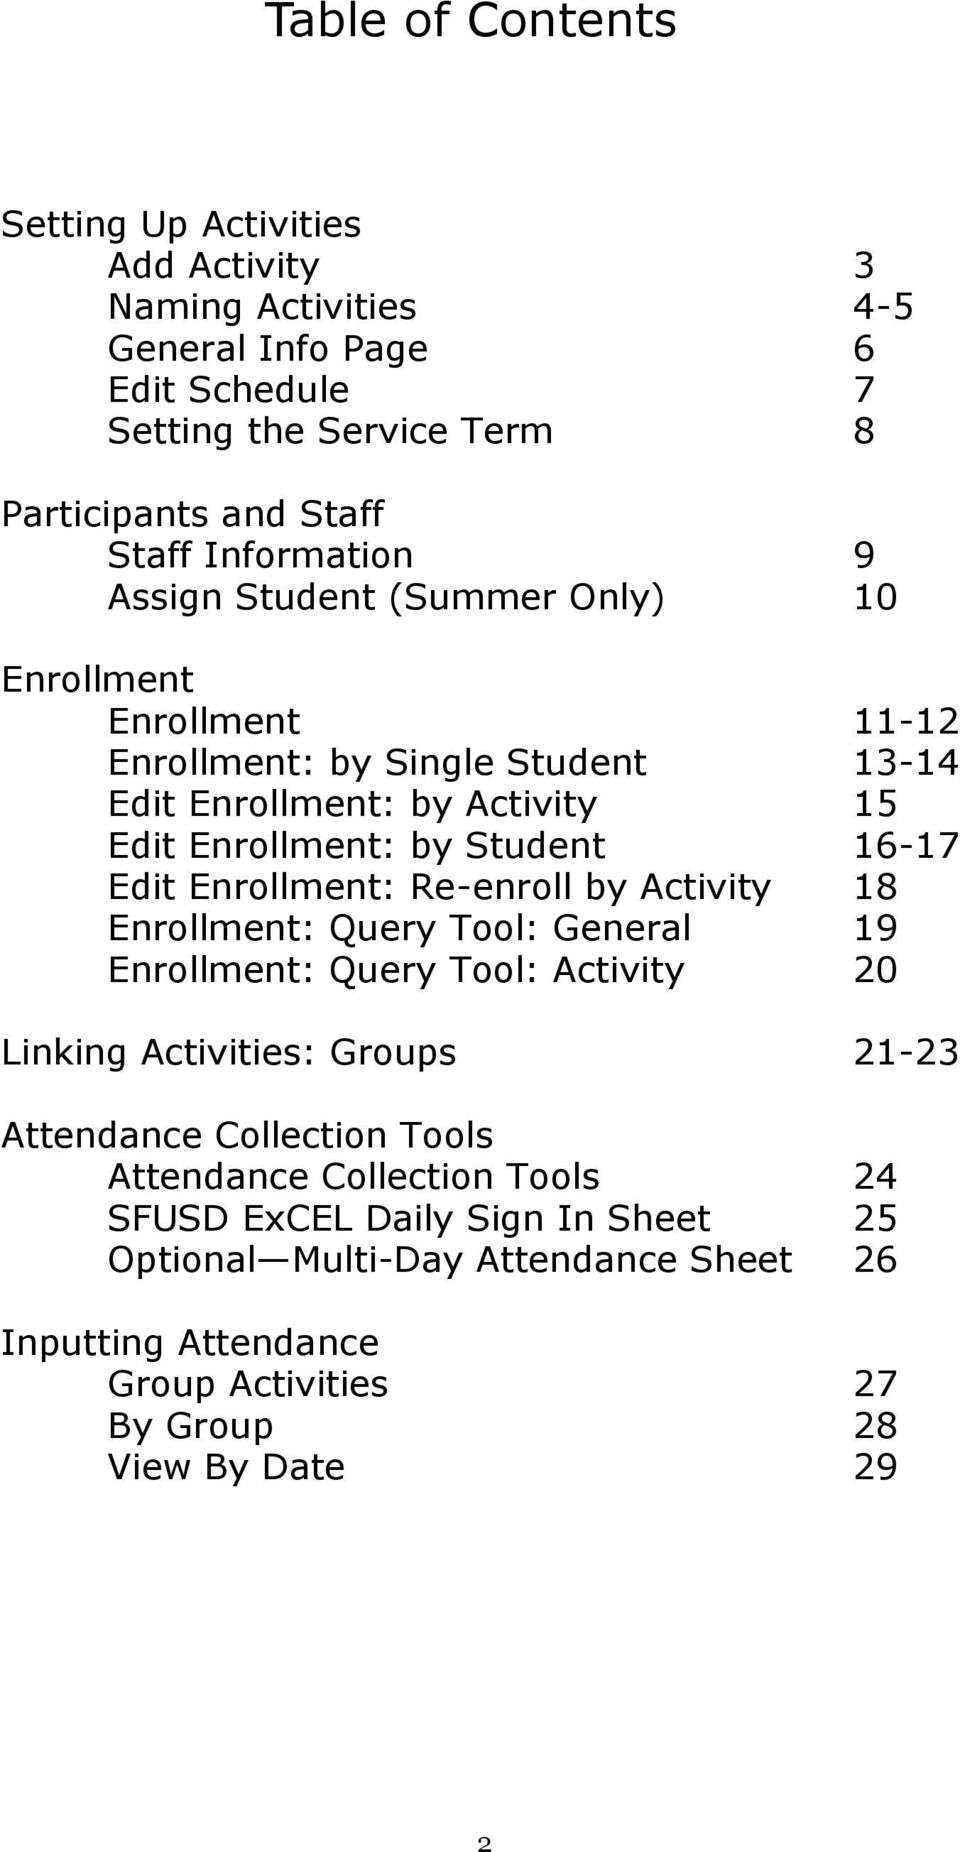 16-17 Edit Enrollment: Re-enroll by Activity 18 Enrollment: Query Tool: General 19 Enrollment: Query Tool: Activity 20 Linking Activities: Groups 21-23 Attendance Collection